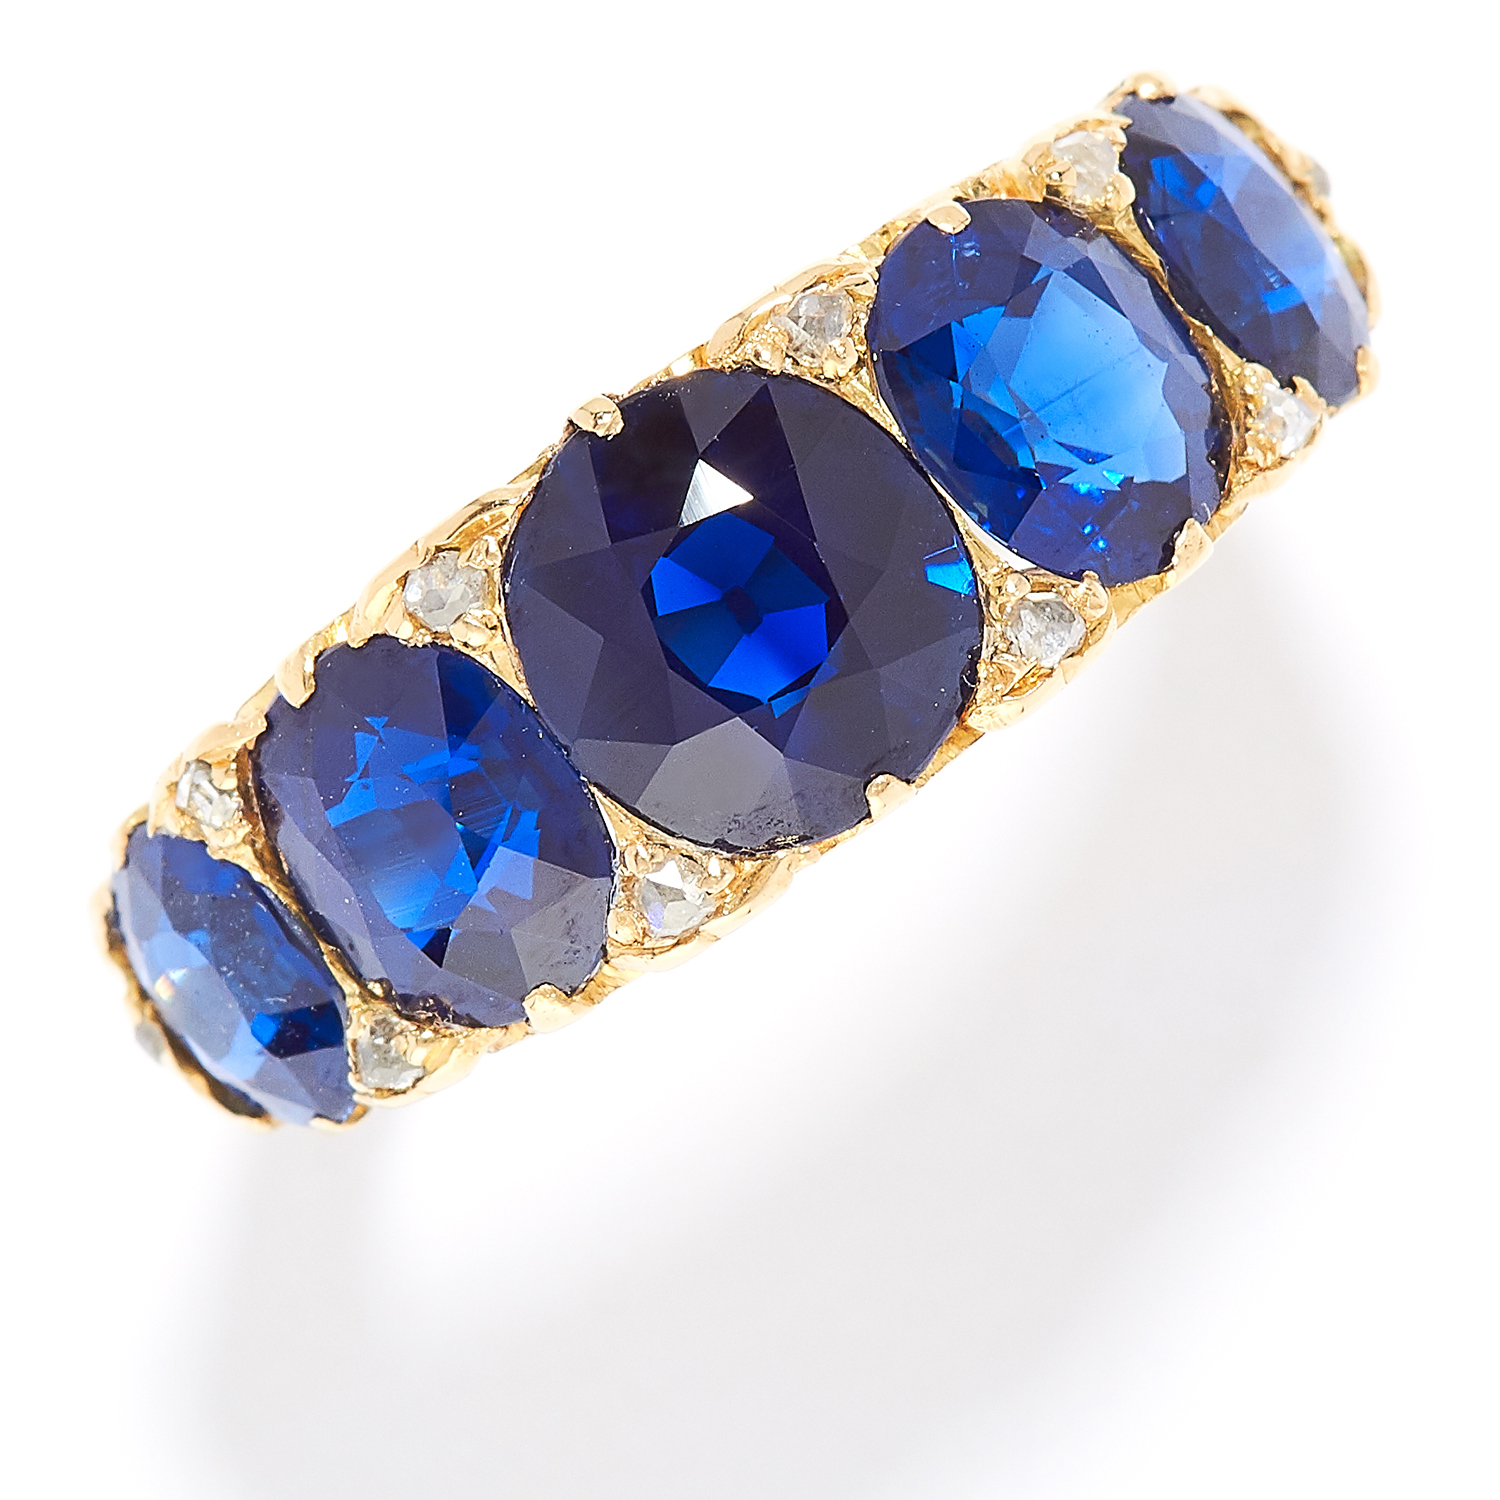 ANTIQUE BURMA NO HEAT SAPPHIRE AND DIAMOND RING, LATE 19TH CENTURY in high carat yellow gold, set